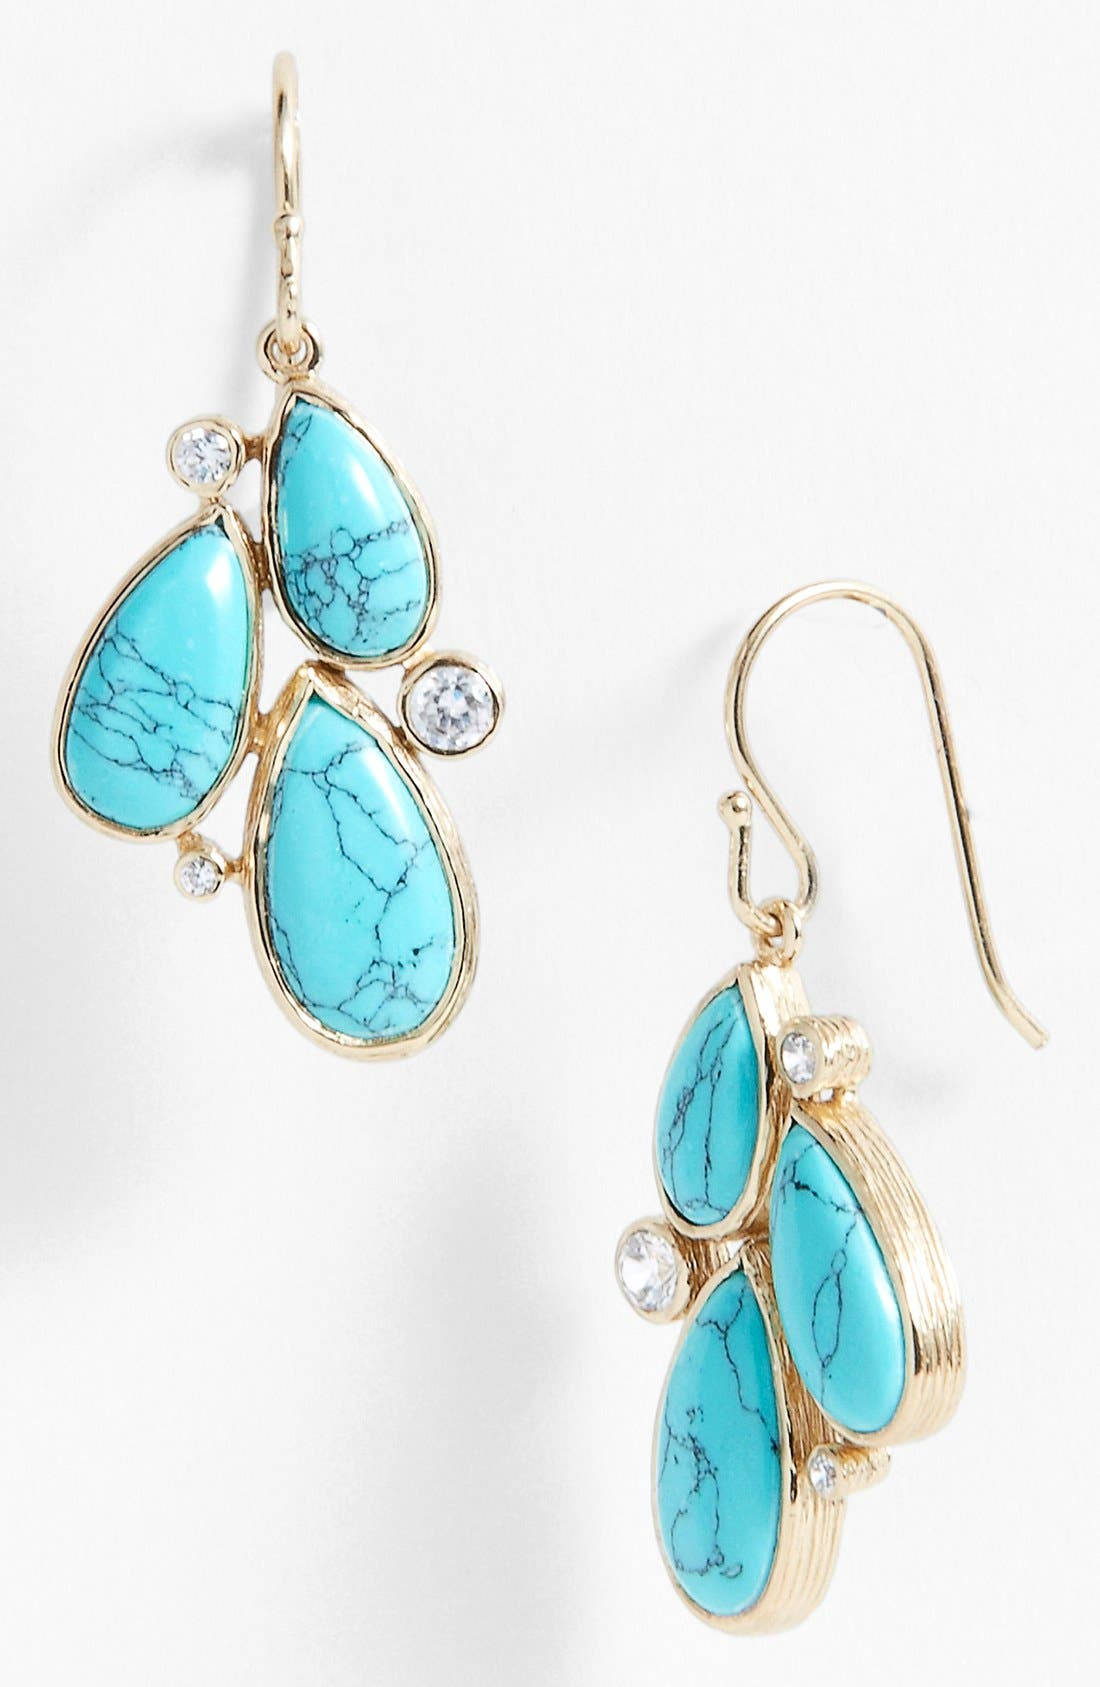 Alternate Image 1 Selected - Melinda Maria 'Regan' Cluster Drop Earrings (Nordstrom Exclusive)